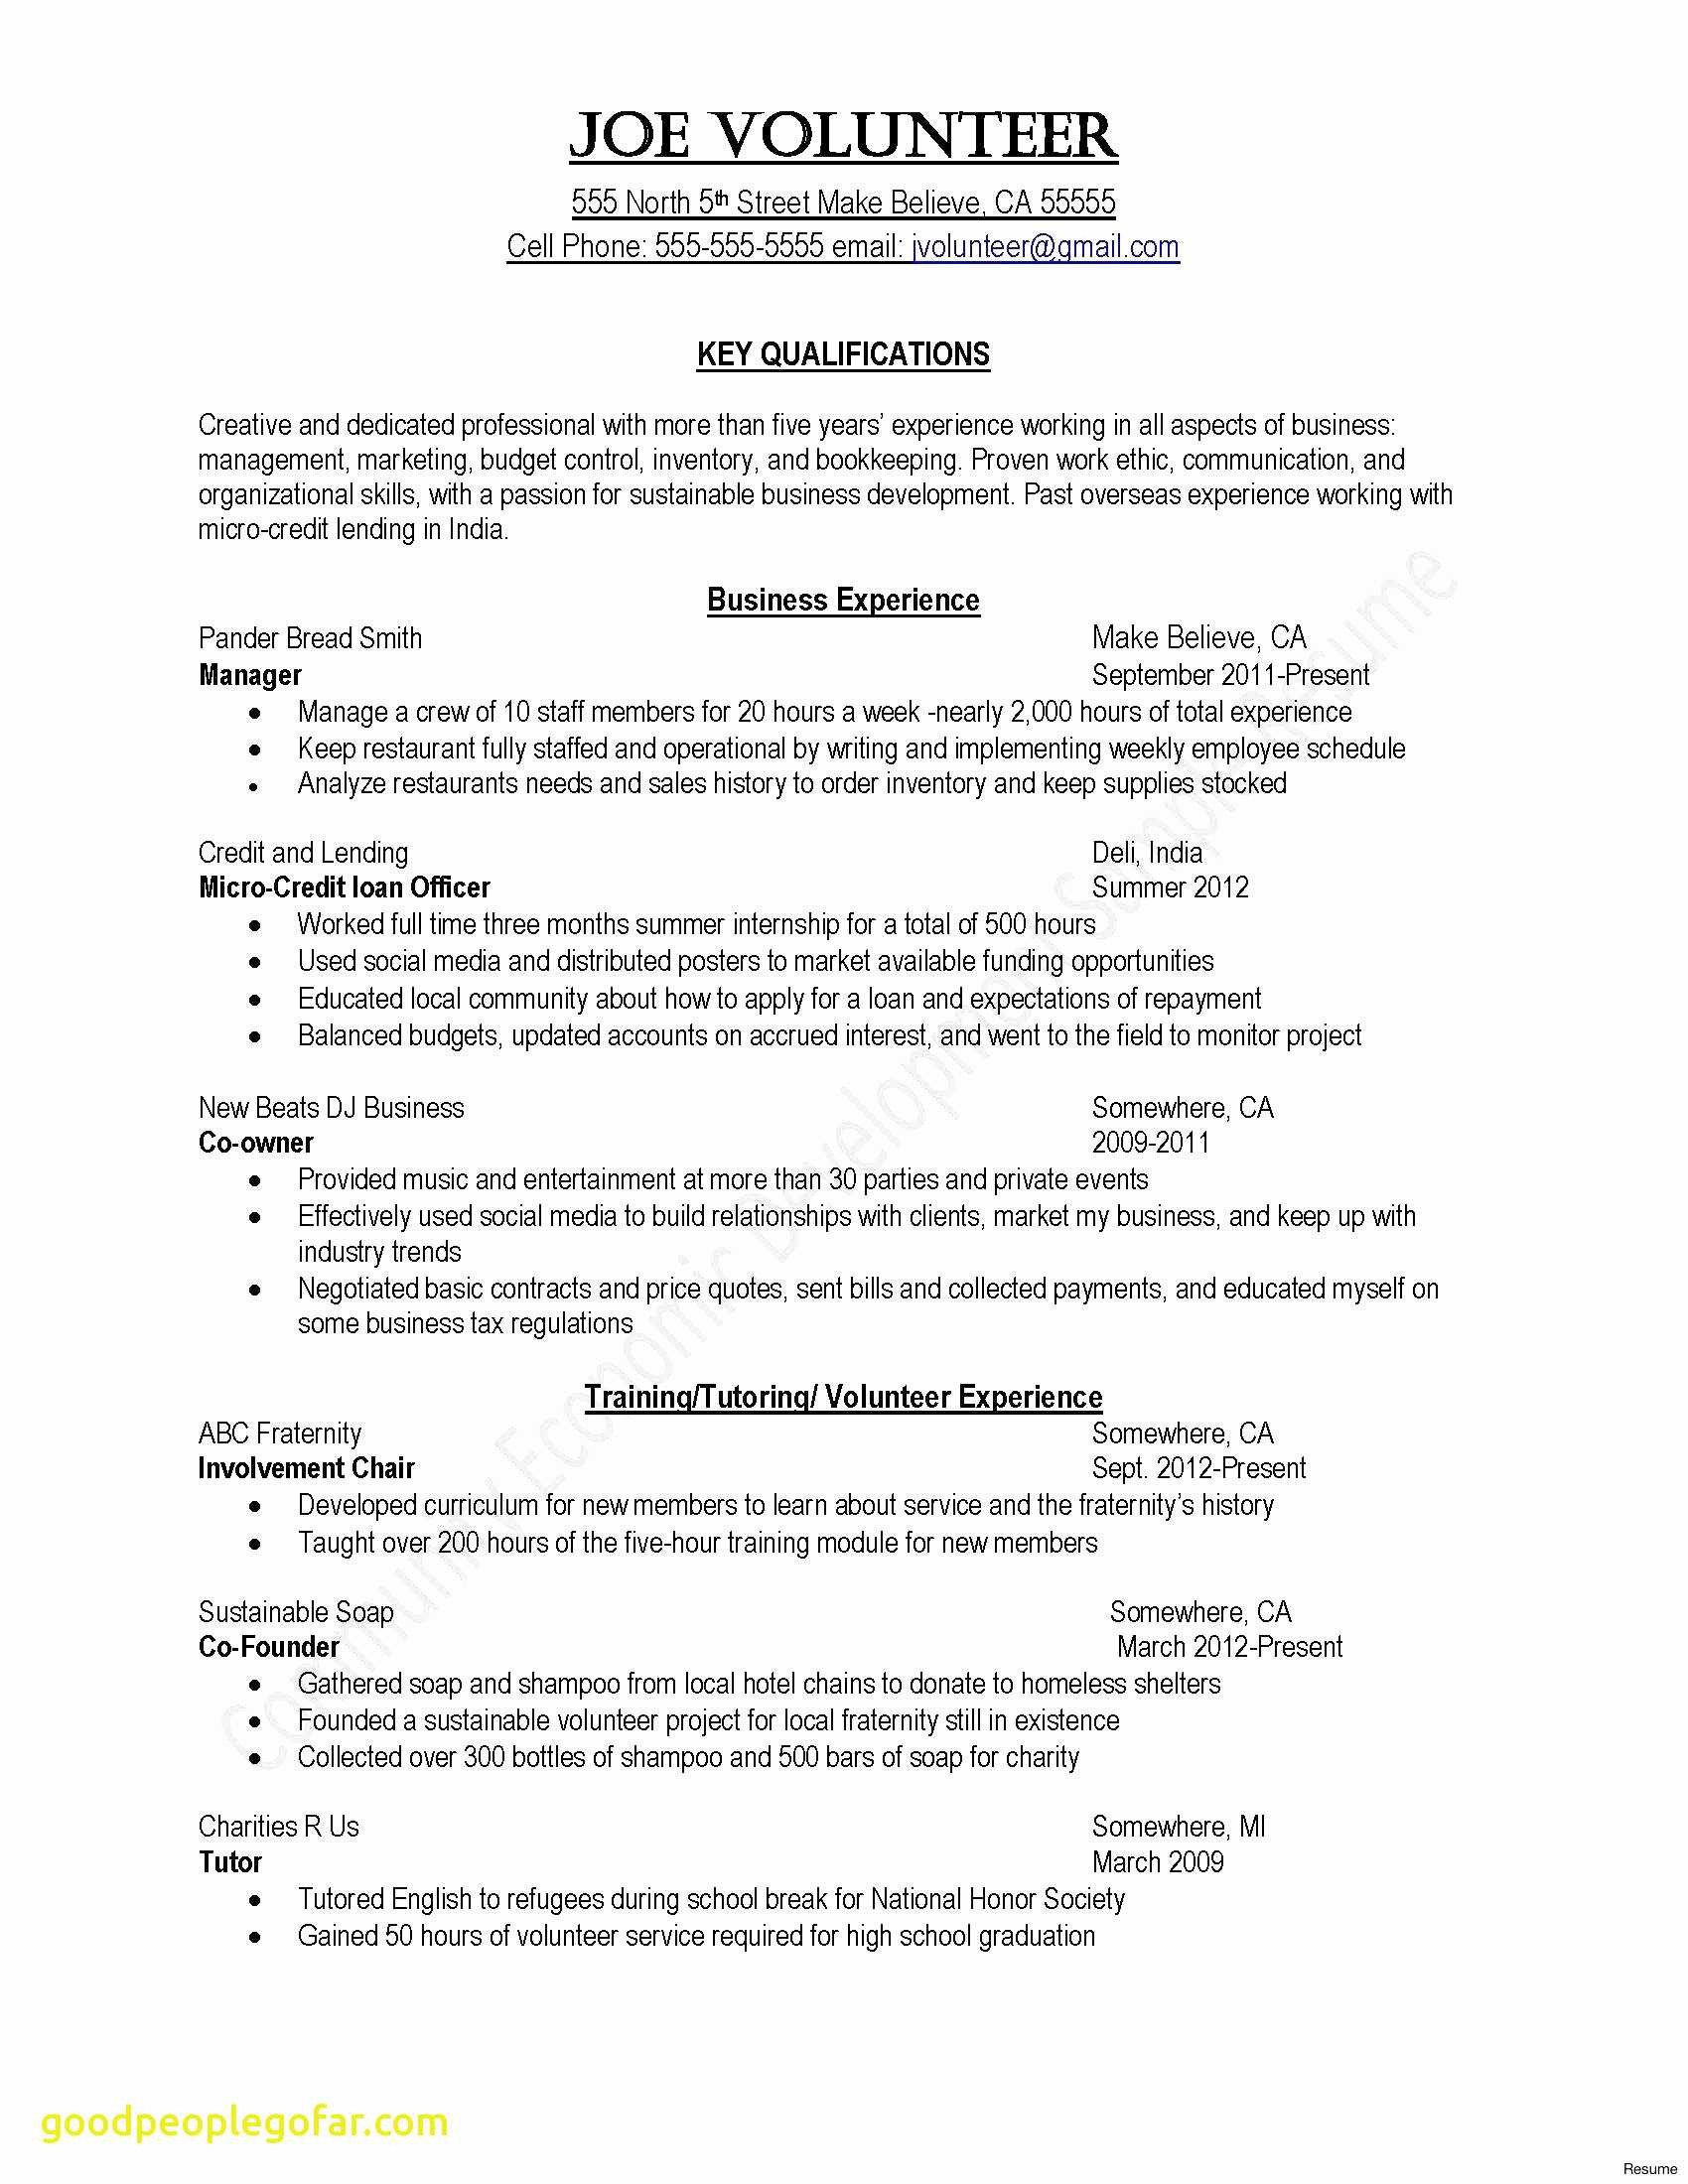 filmmaker resume template example-maker Resume Template Awesome Inspirational Resume Tutor Unique Painter Resume 0d Branch Manager 17-f